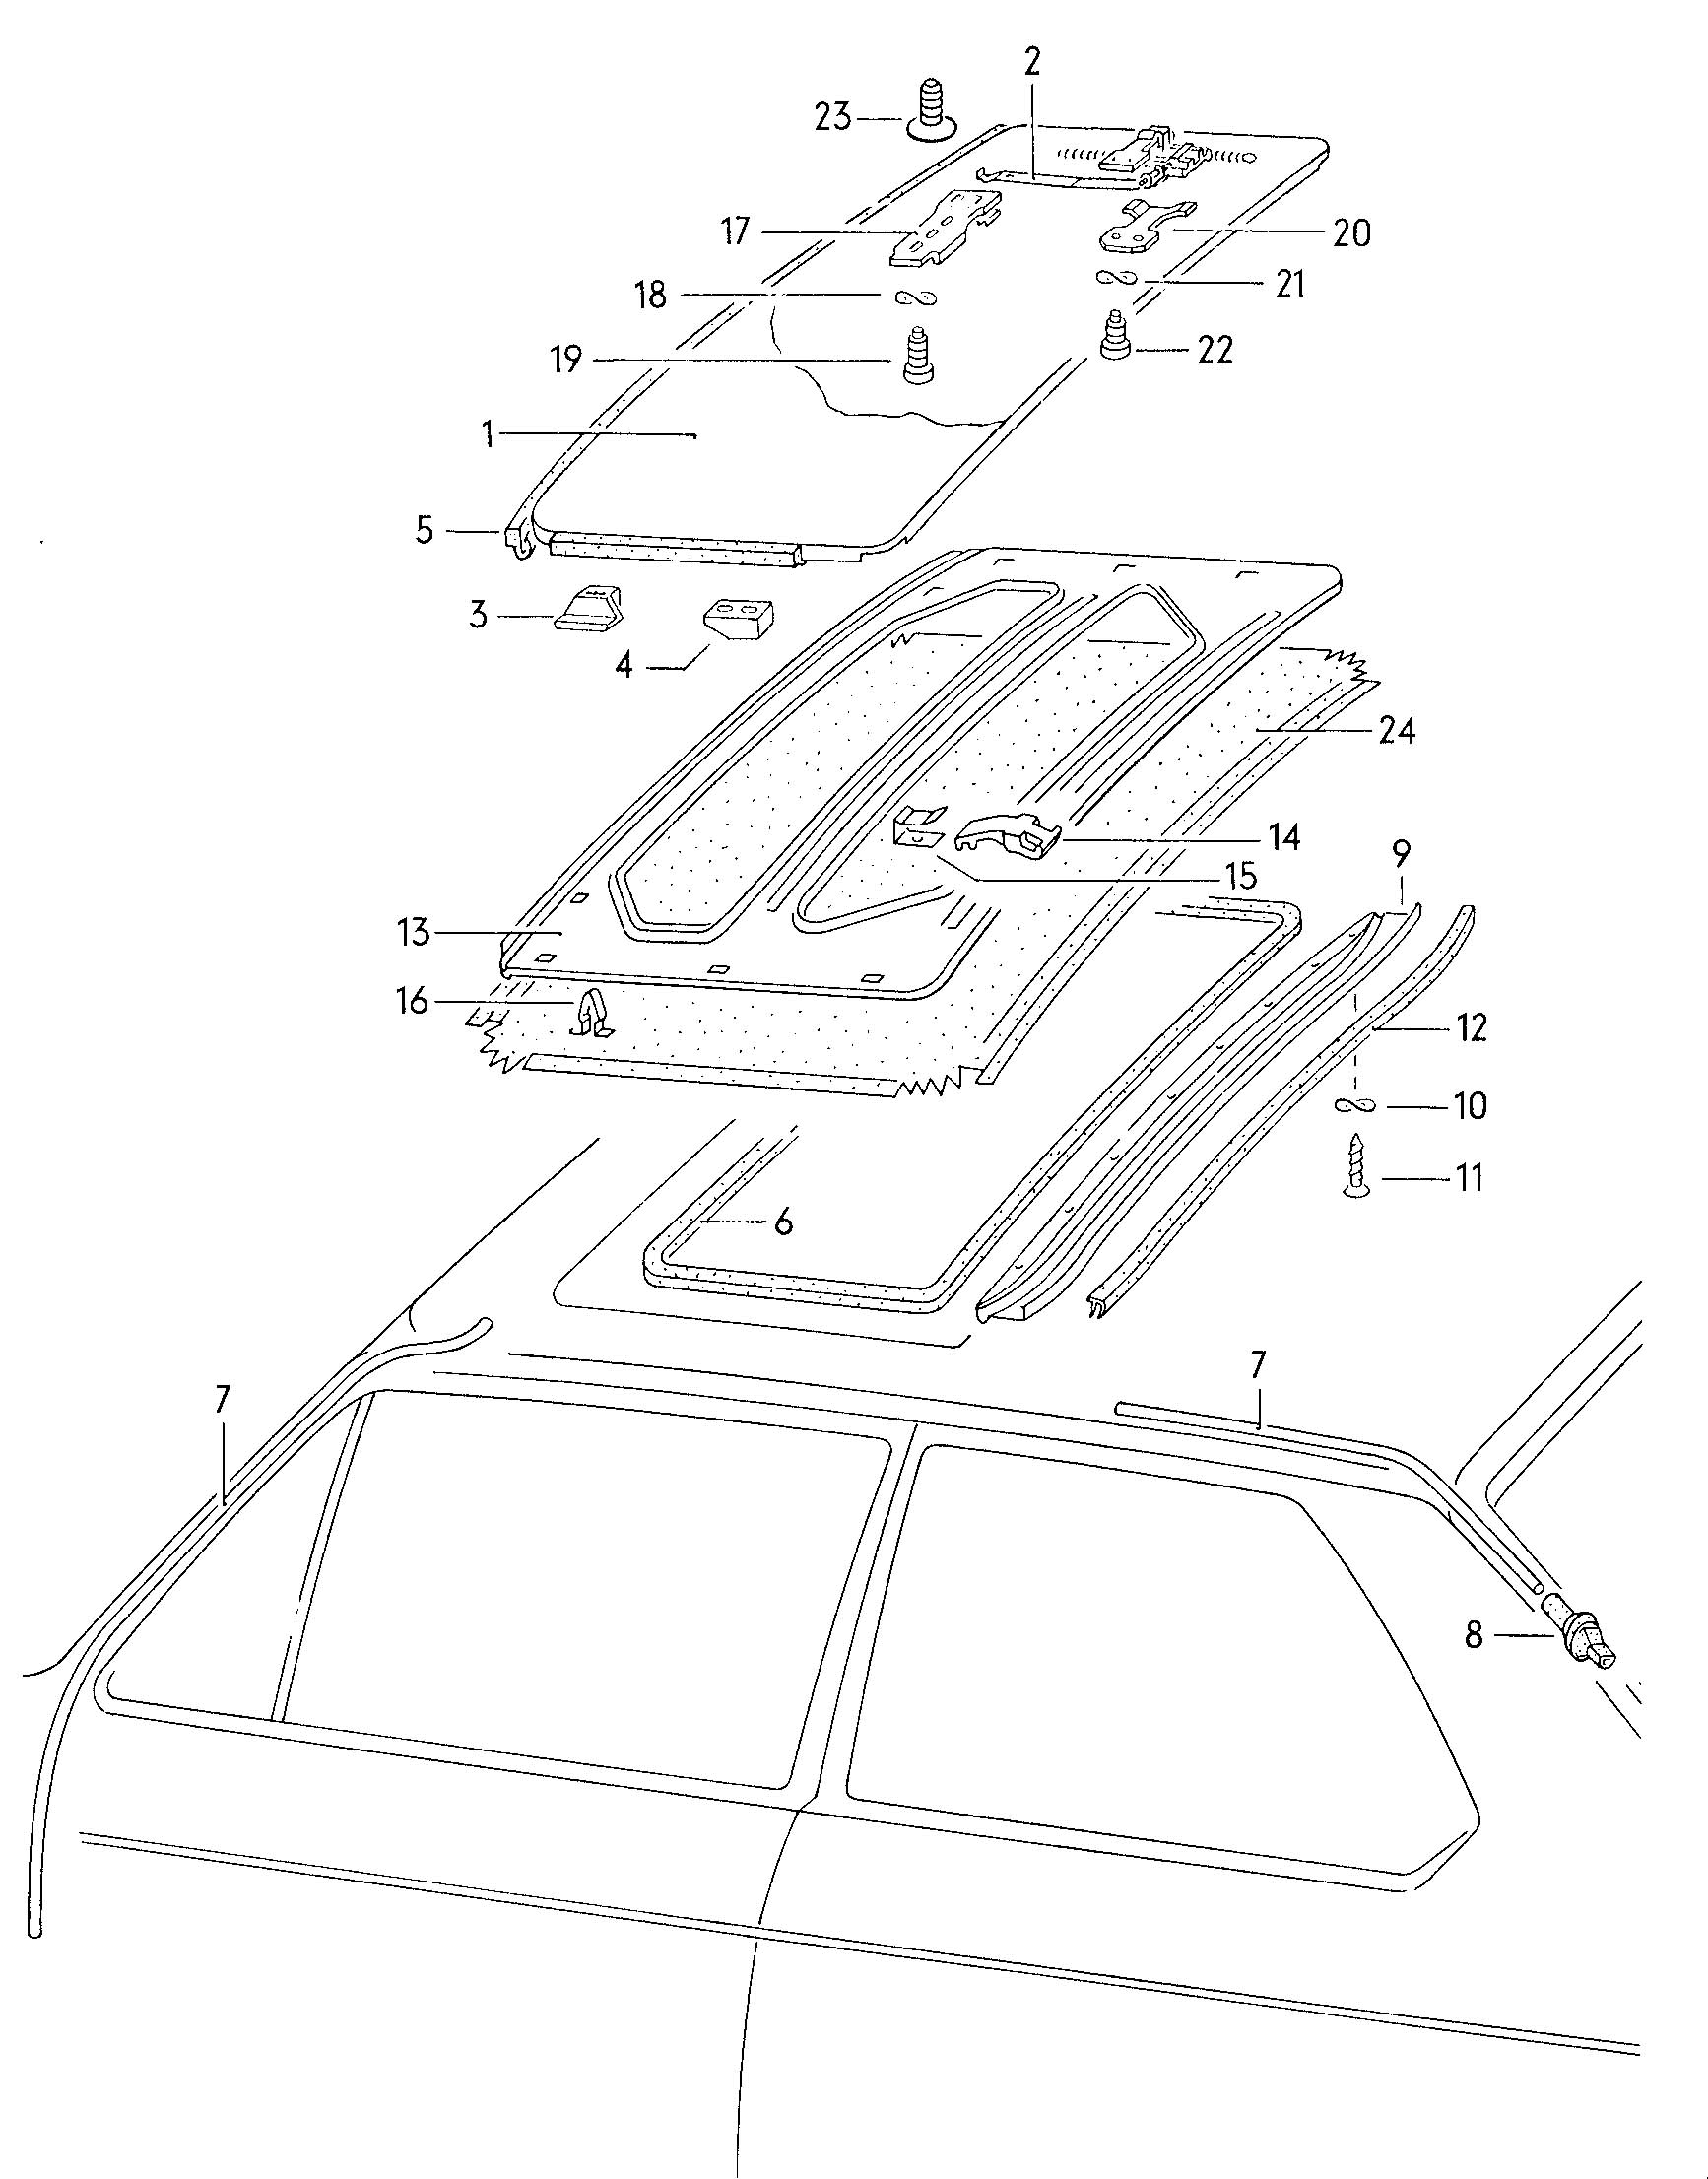 Volkswagen Rabbit 6 Dsg Friction Guide